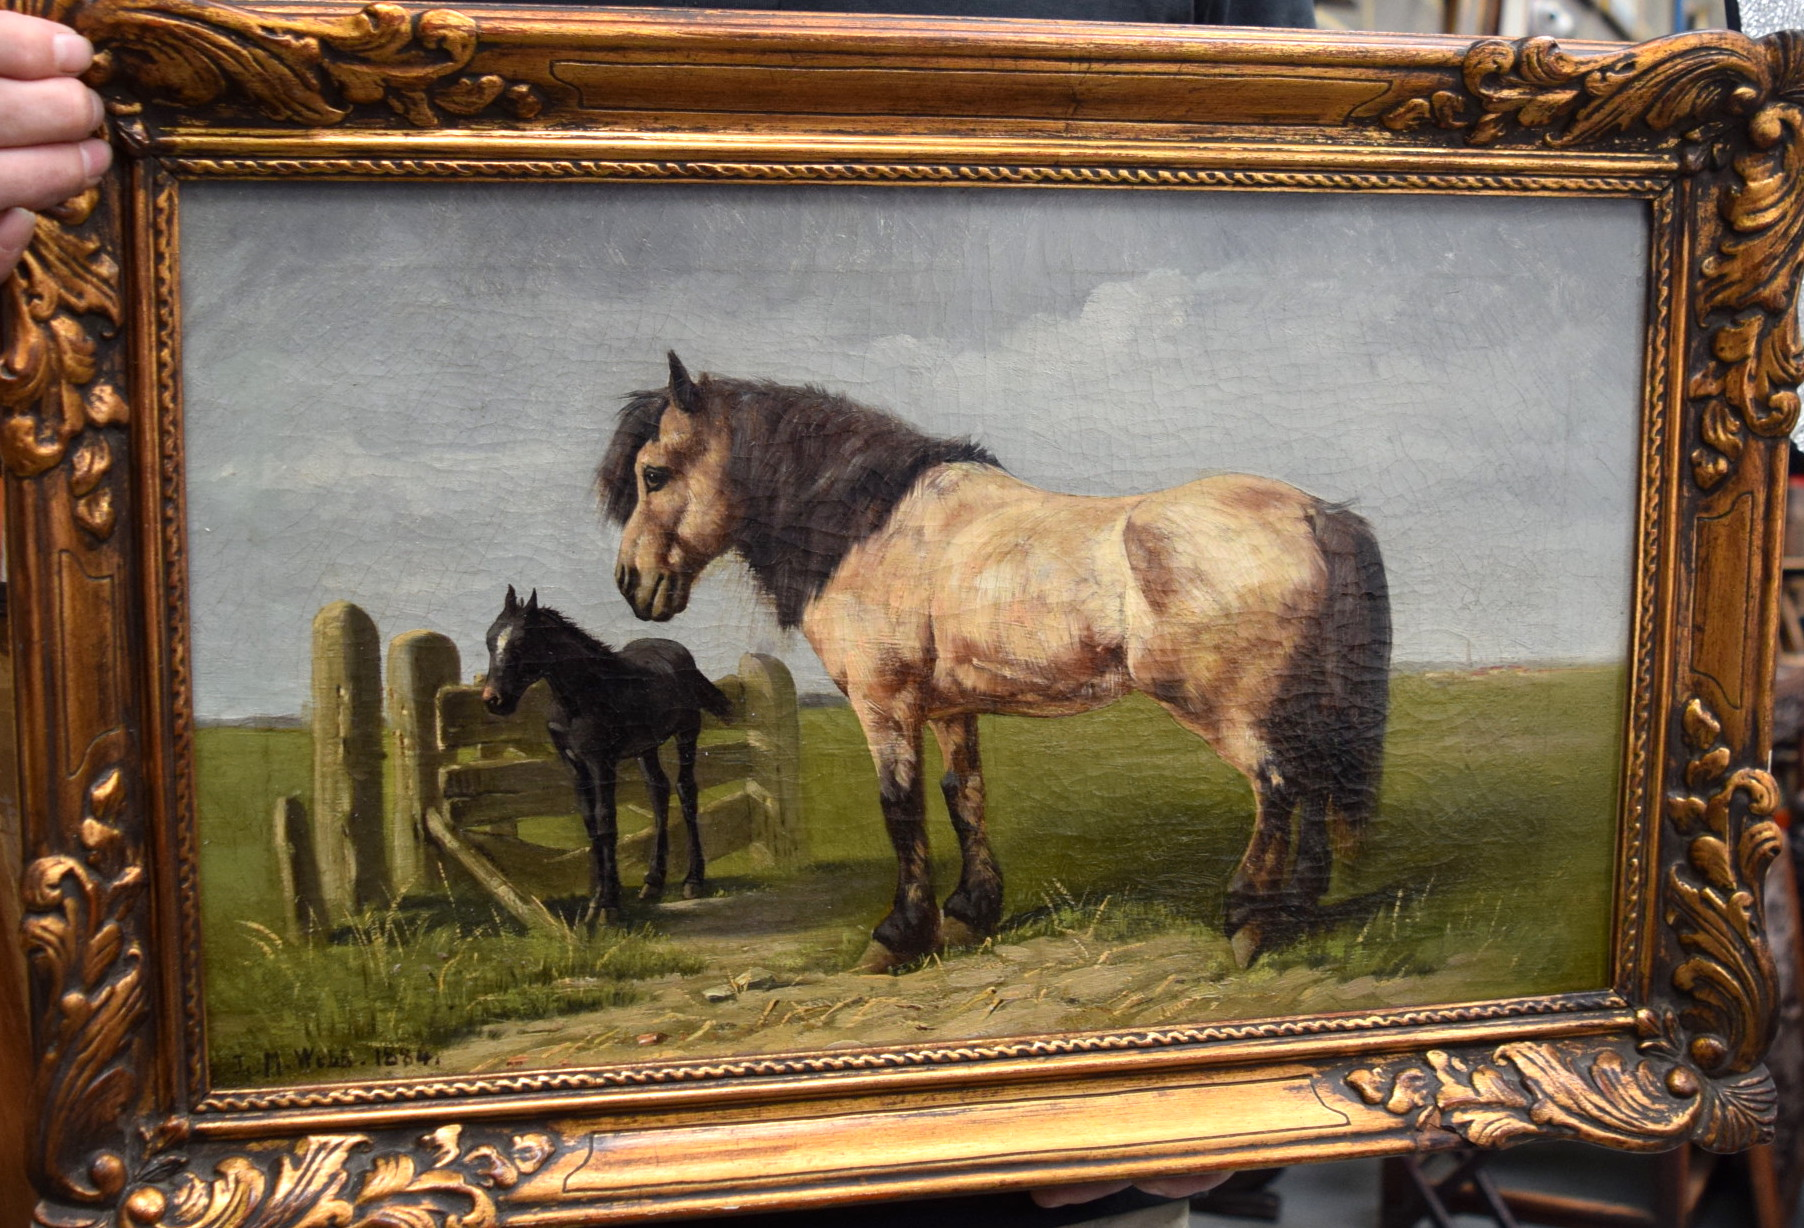 Lot 2913 - L M WEBB (British) FRAMED OIL ON CANVAS, signed & dated 1884, a standing horse with foal. 30.5 cm x